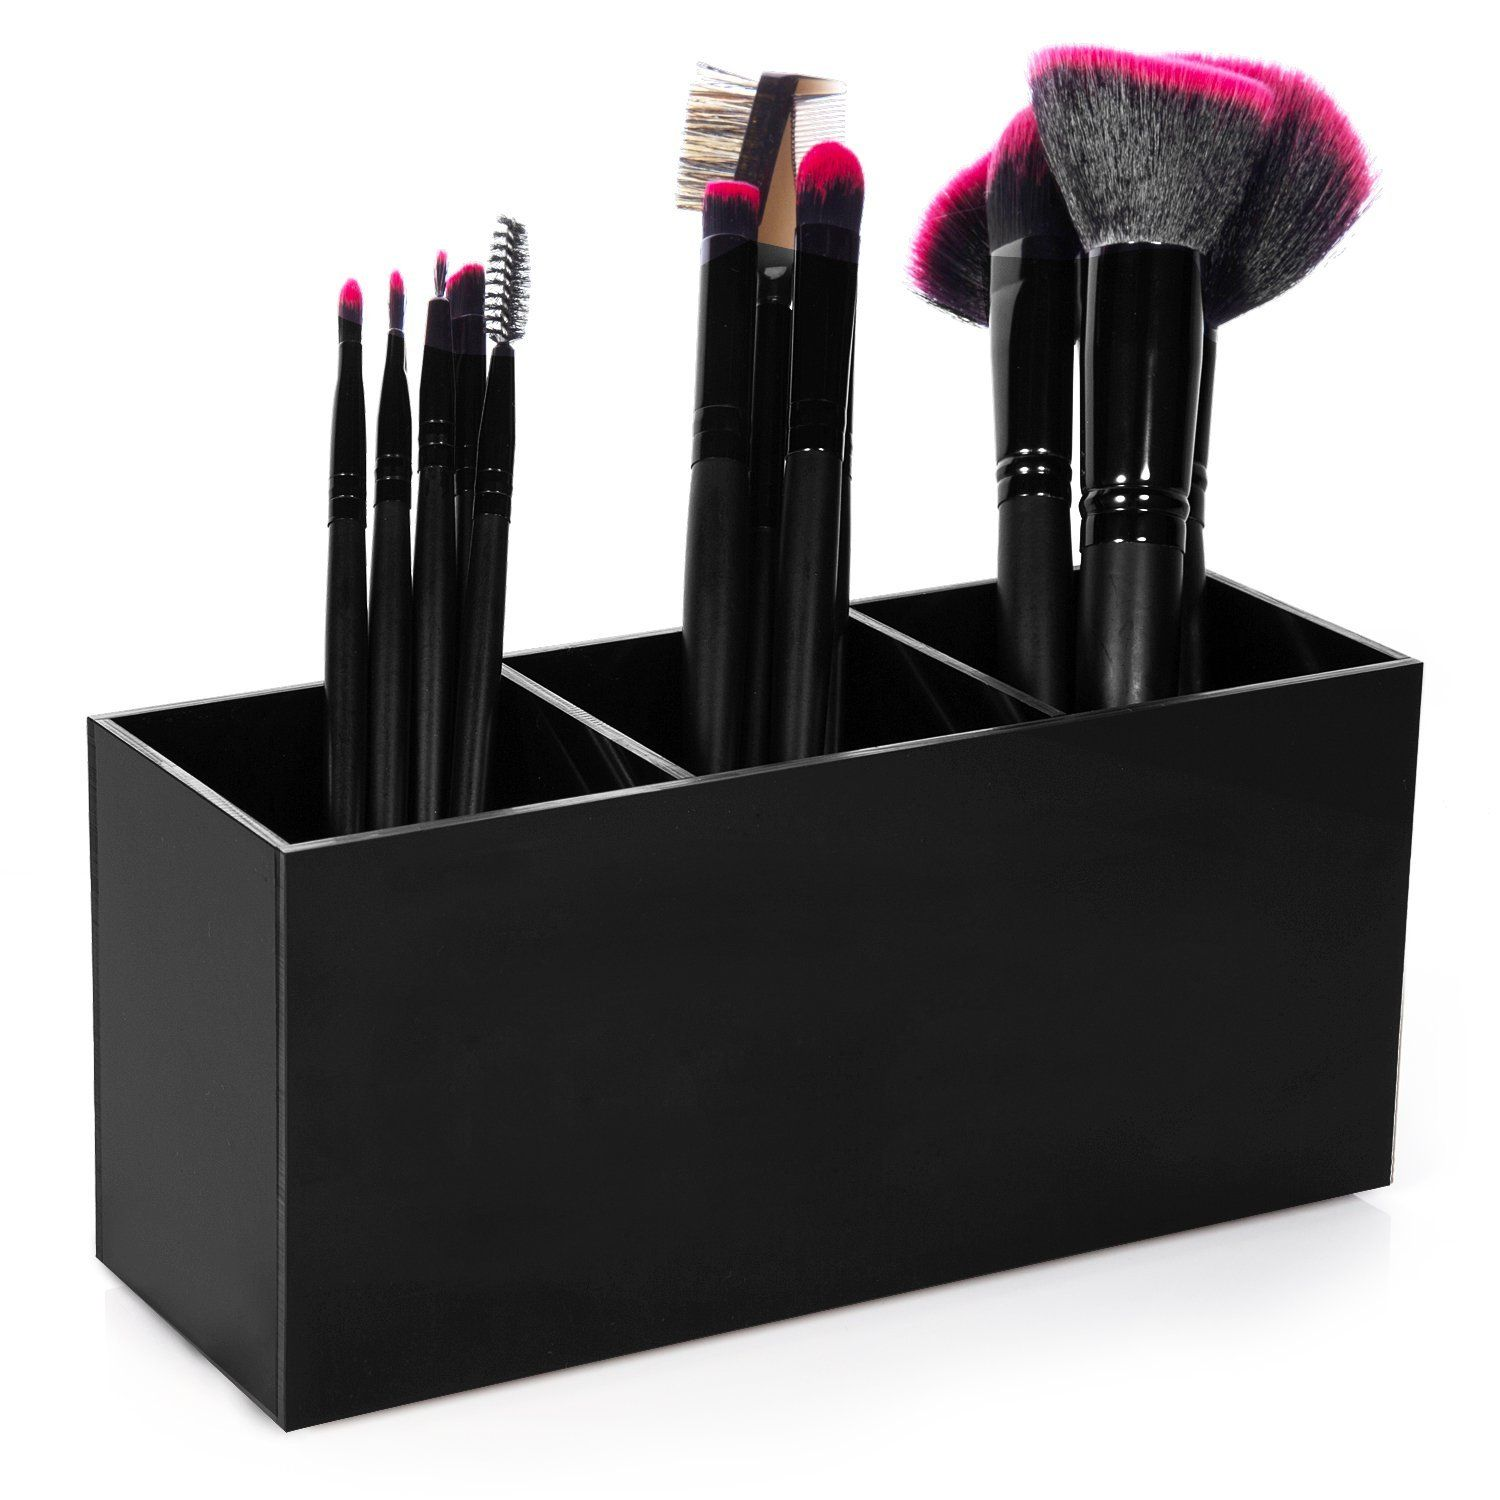 Hblife Makeup Brush Holder Organizer, 3 Slot Acrylic Cosmetics Brushes